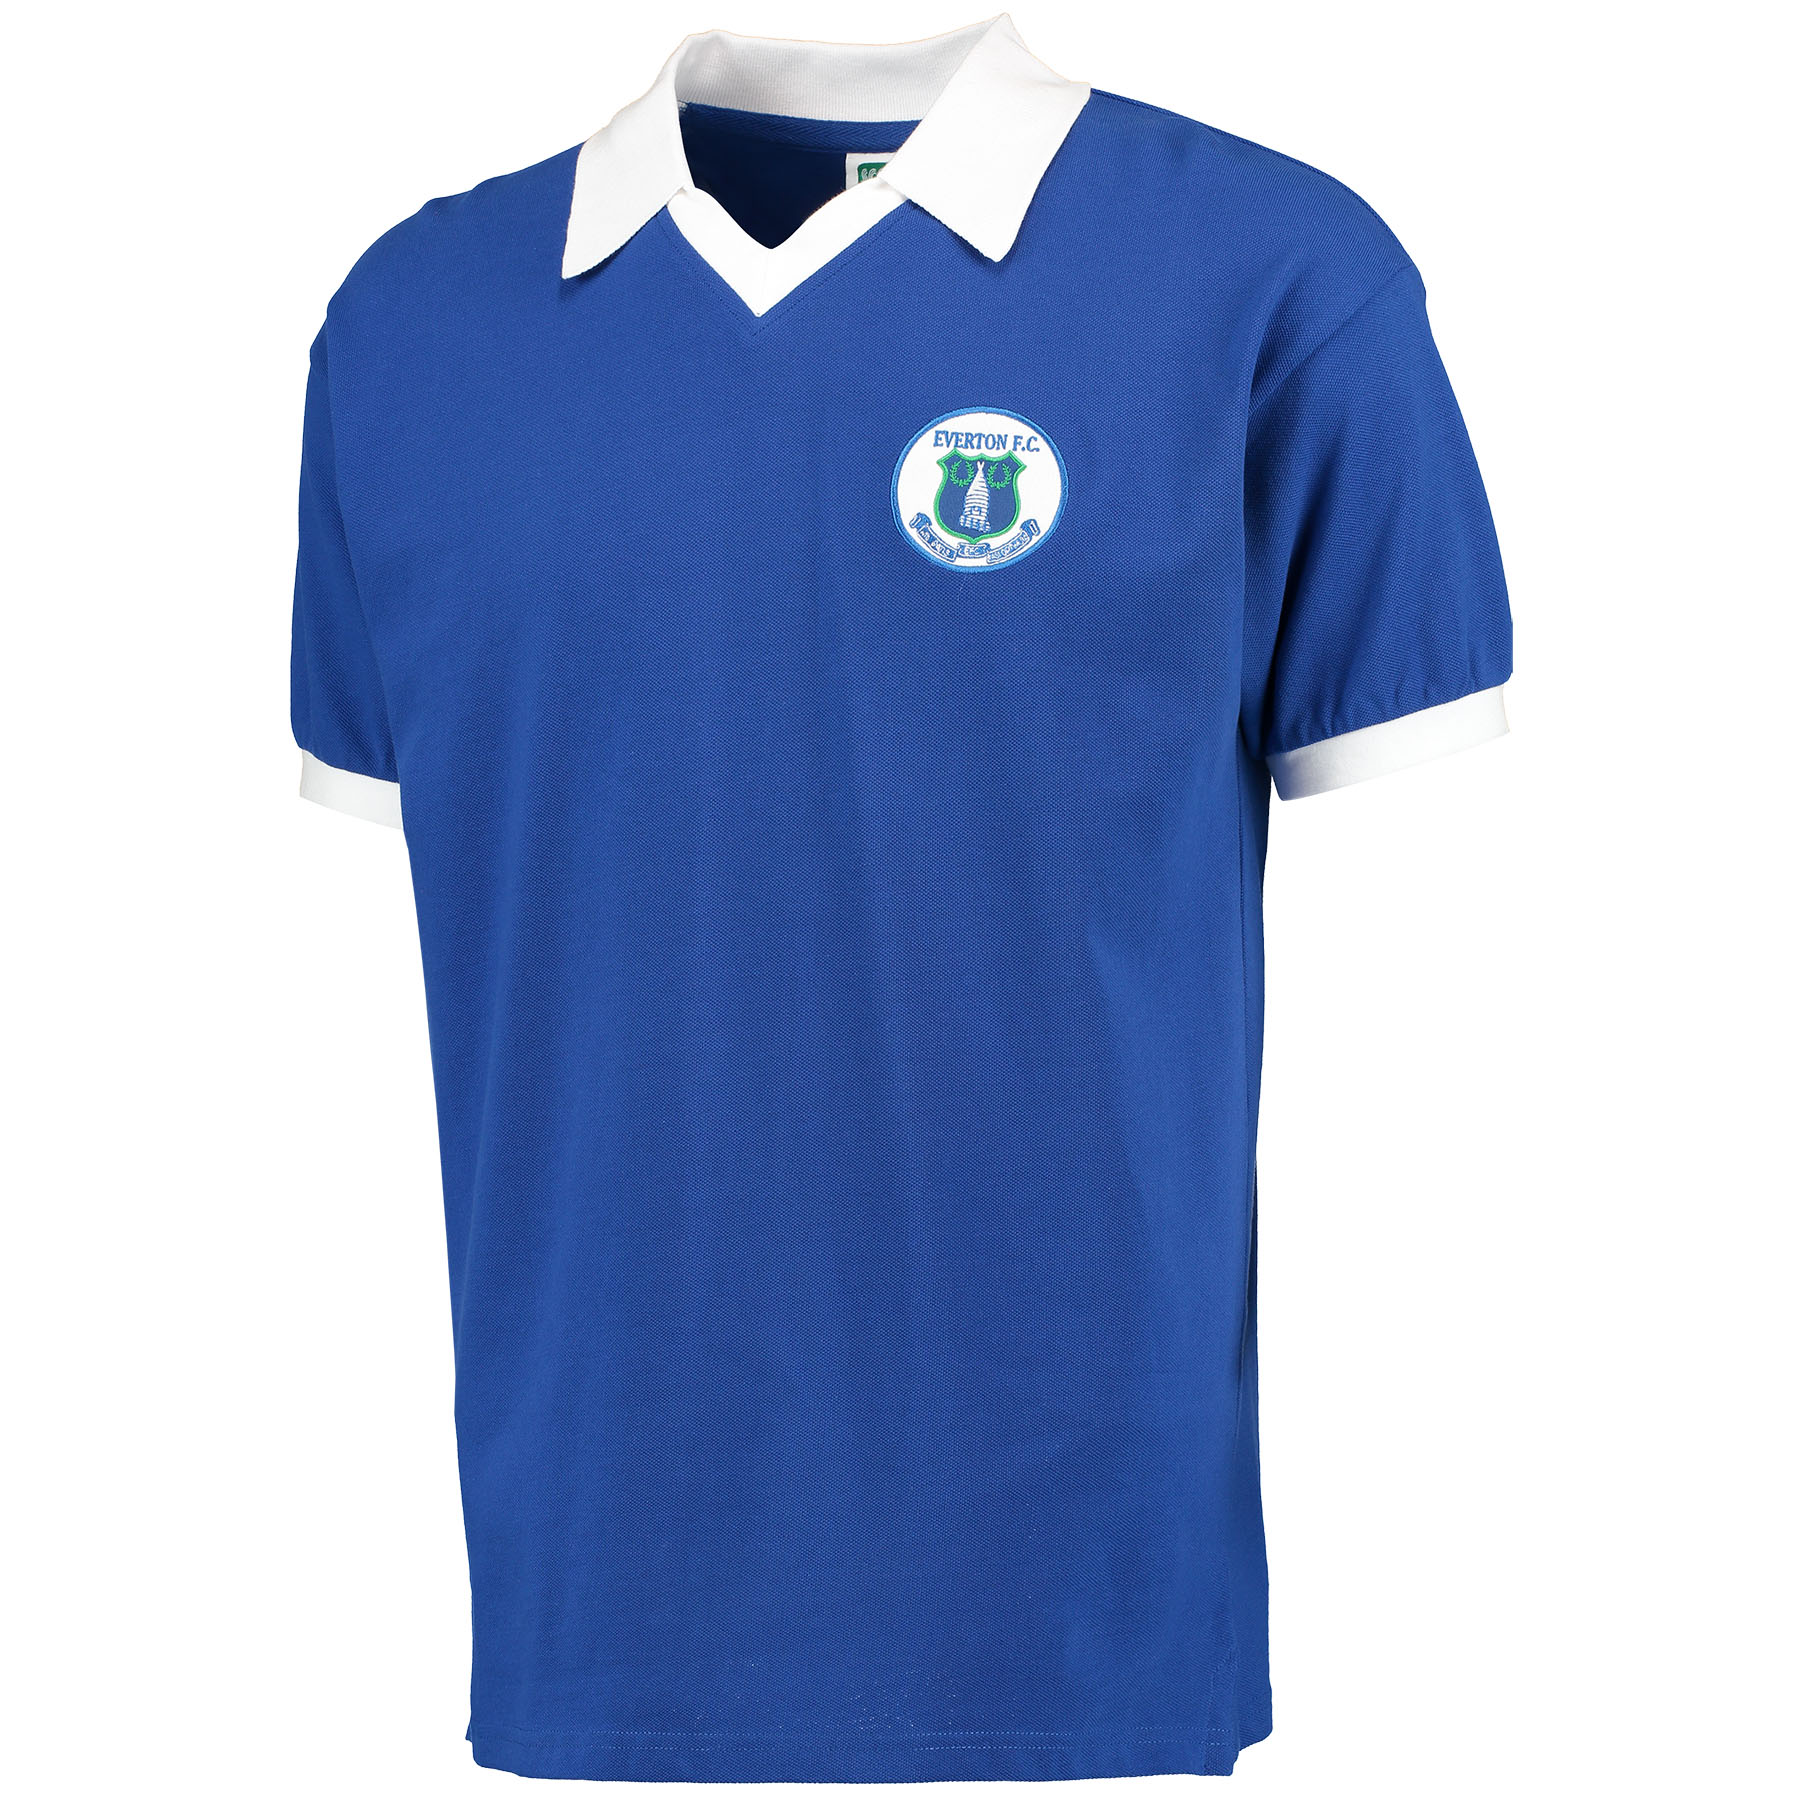 Everton 1978 S/S Home Shirt - Blue